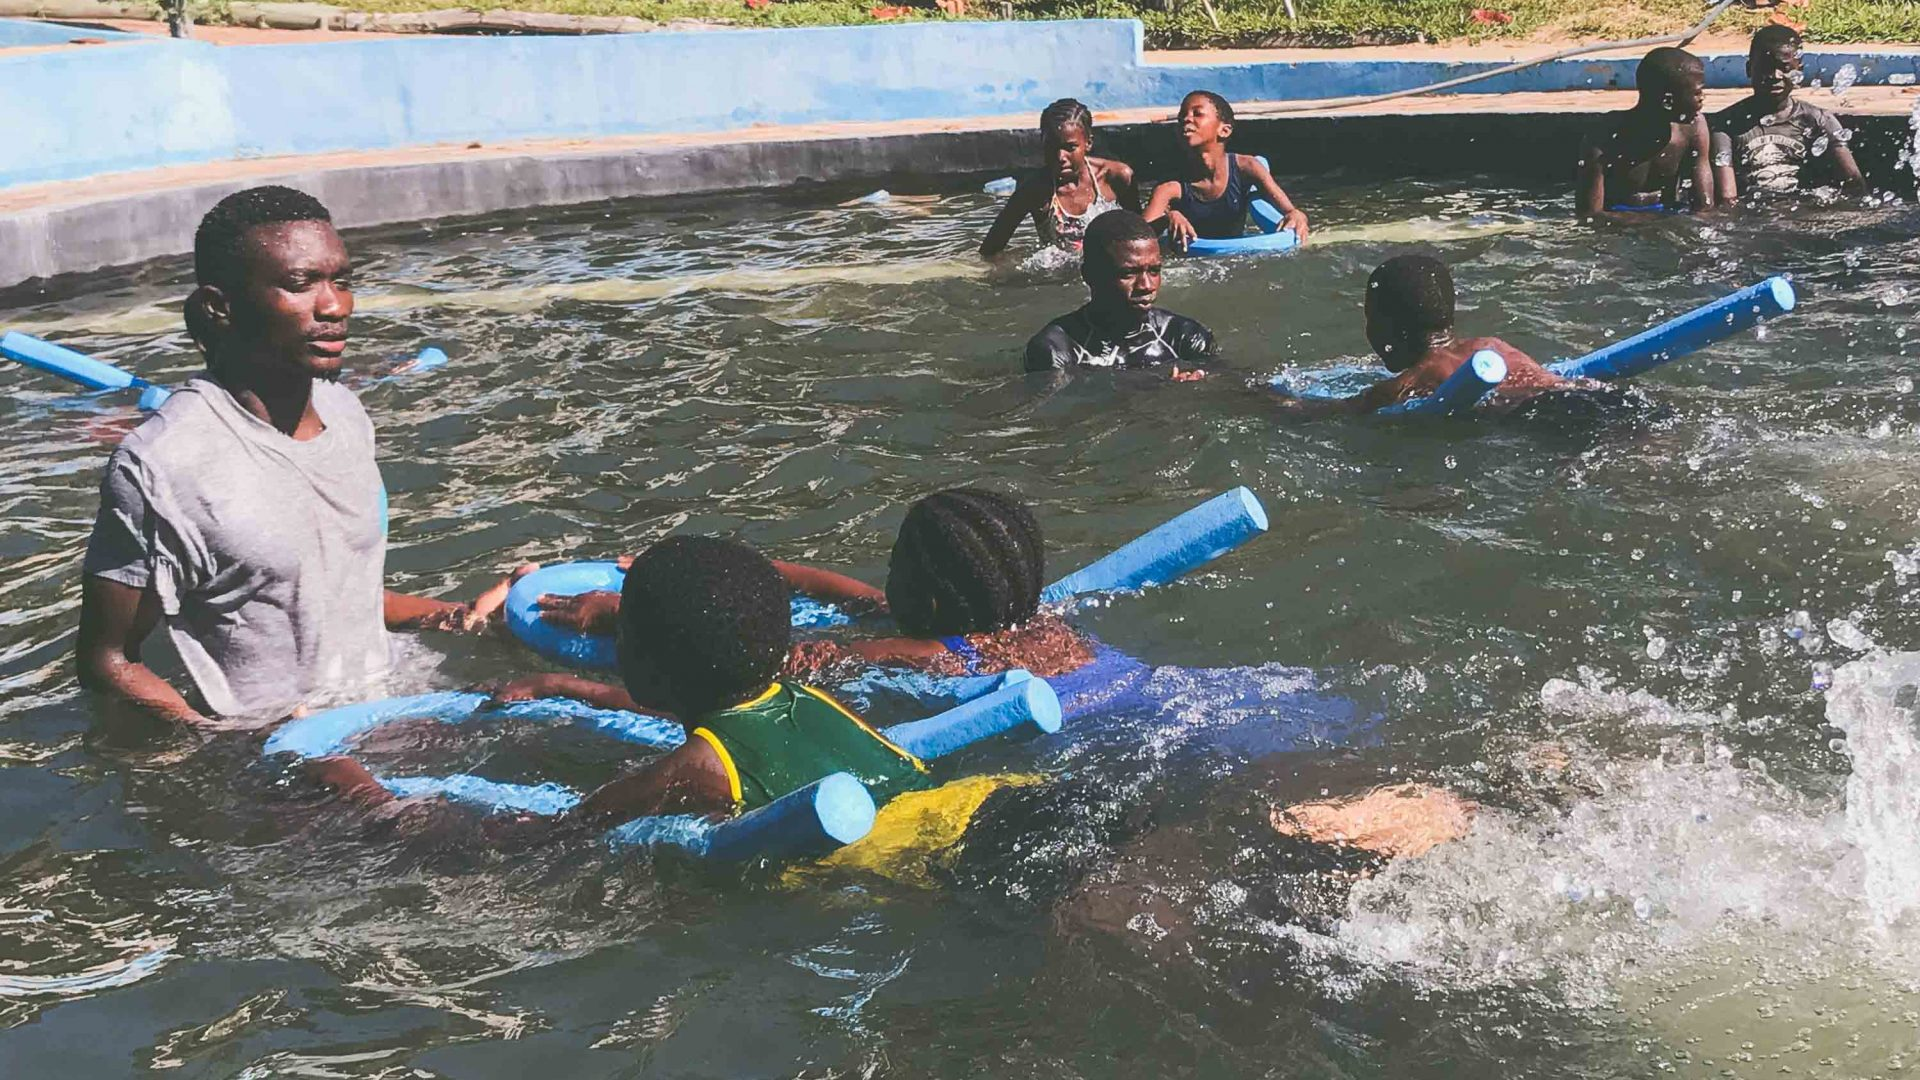 Pedro (left) and Simone (center) teach swimming in Tofo in southeastern Mozambique as part of the Ocean Guardians program.